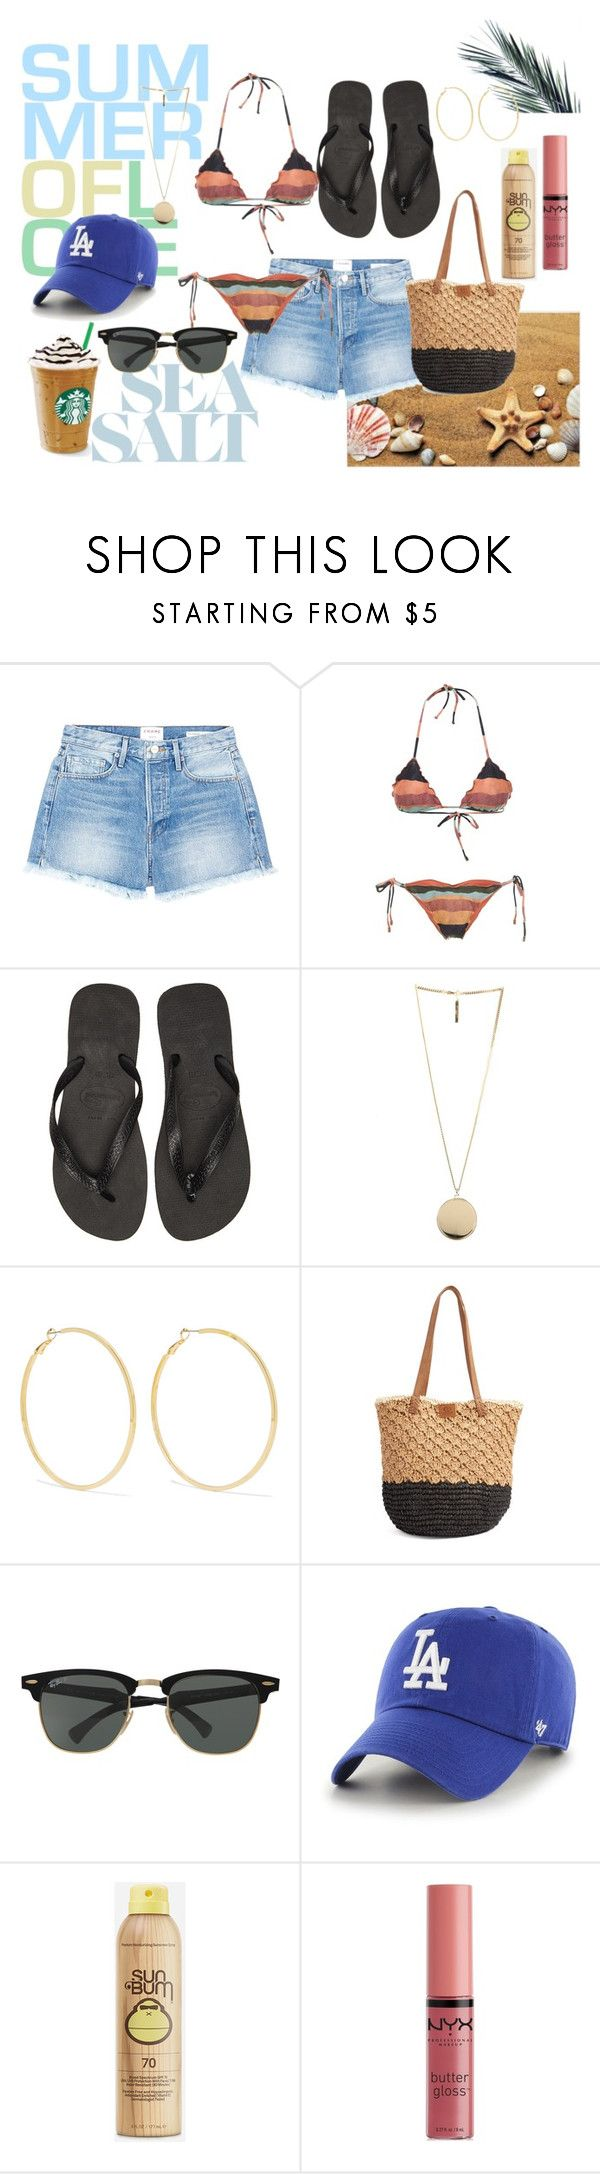 """""""17.13"""" by nicaa on Polyvore featuring moda, Frame, Havaianas, Givenchy, Kenneth Jay Lane, Rip Curl, Ray-Ban, '47 Brand, Sun Bum e NYX"""